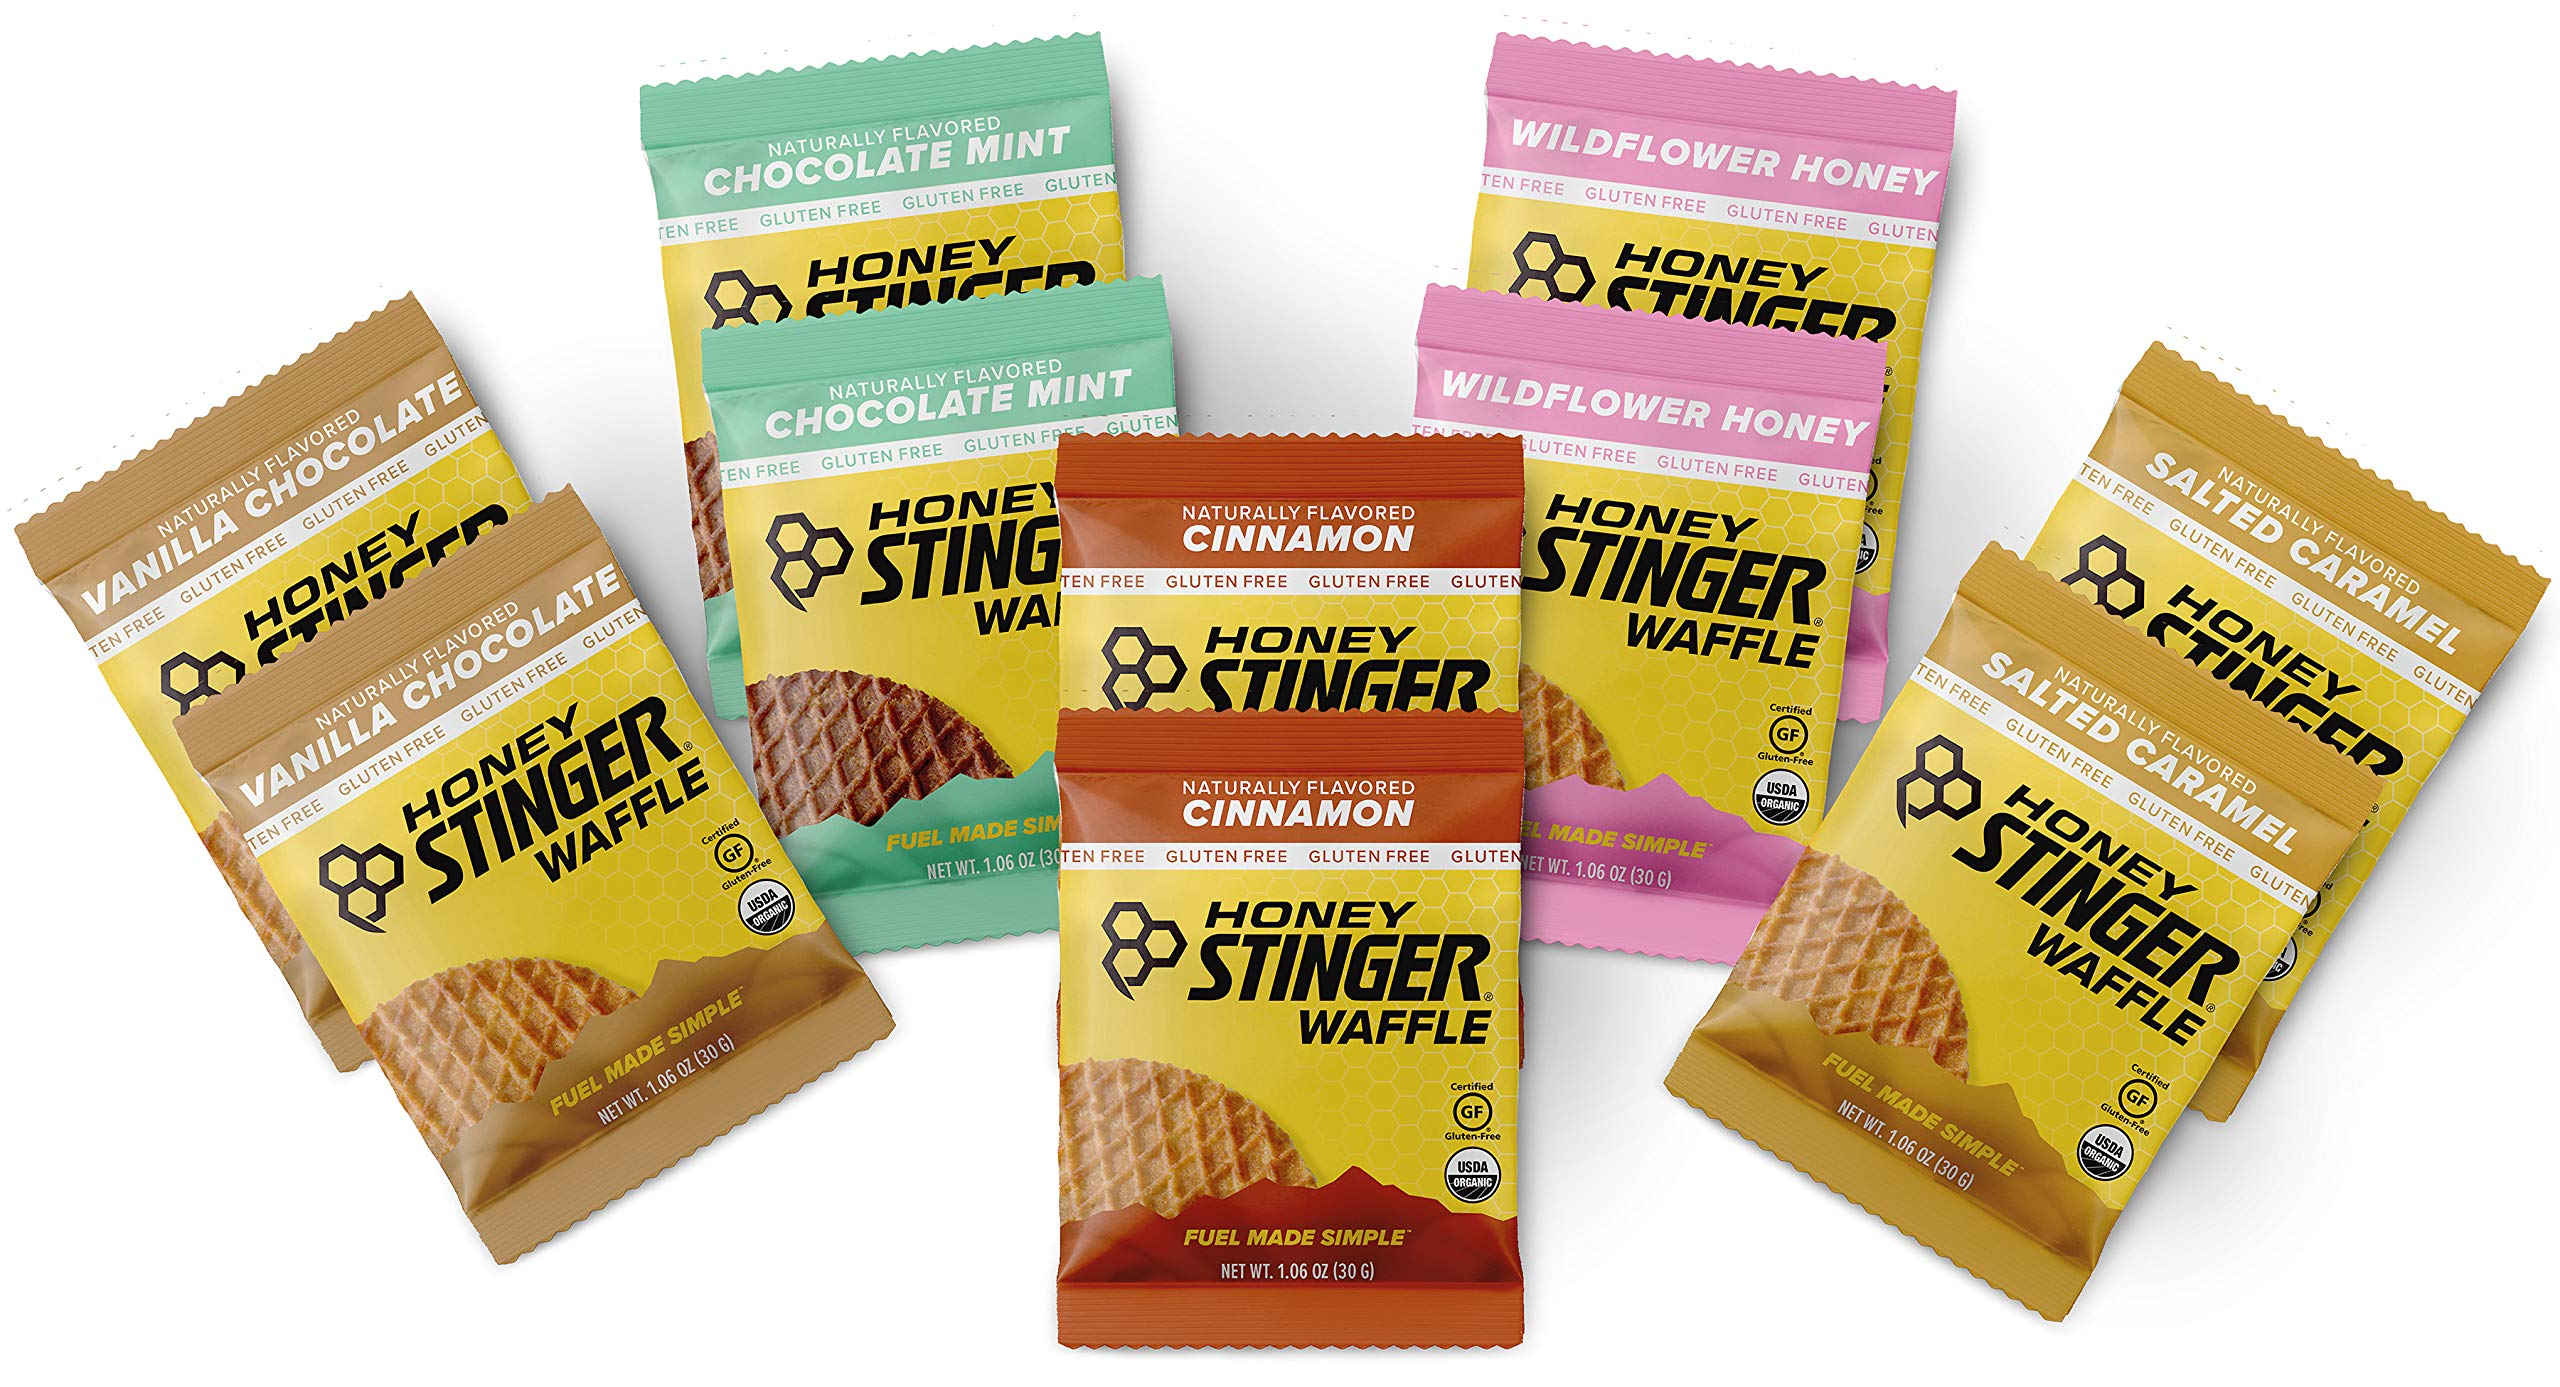 Honey Stinger Gluten Free Waffles - Variety Pack - 10 Count - 2 of Each Flavor - Energy Source for Any Activity - Vanilla & Chocolate, Wildflower Honey, Chocolate Mint, Salted Caramel & Cinnamon by Honey Stinger